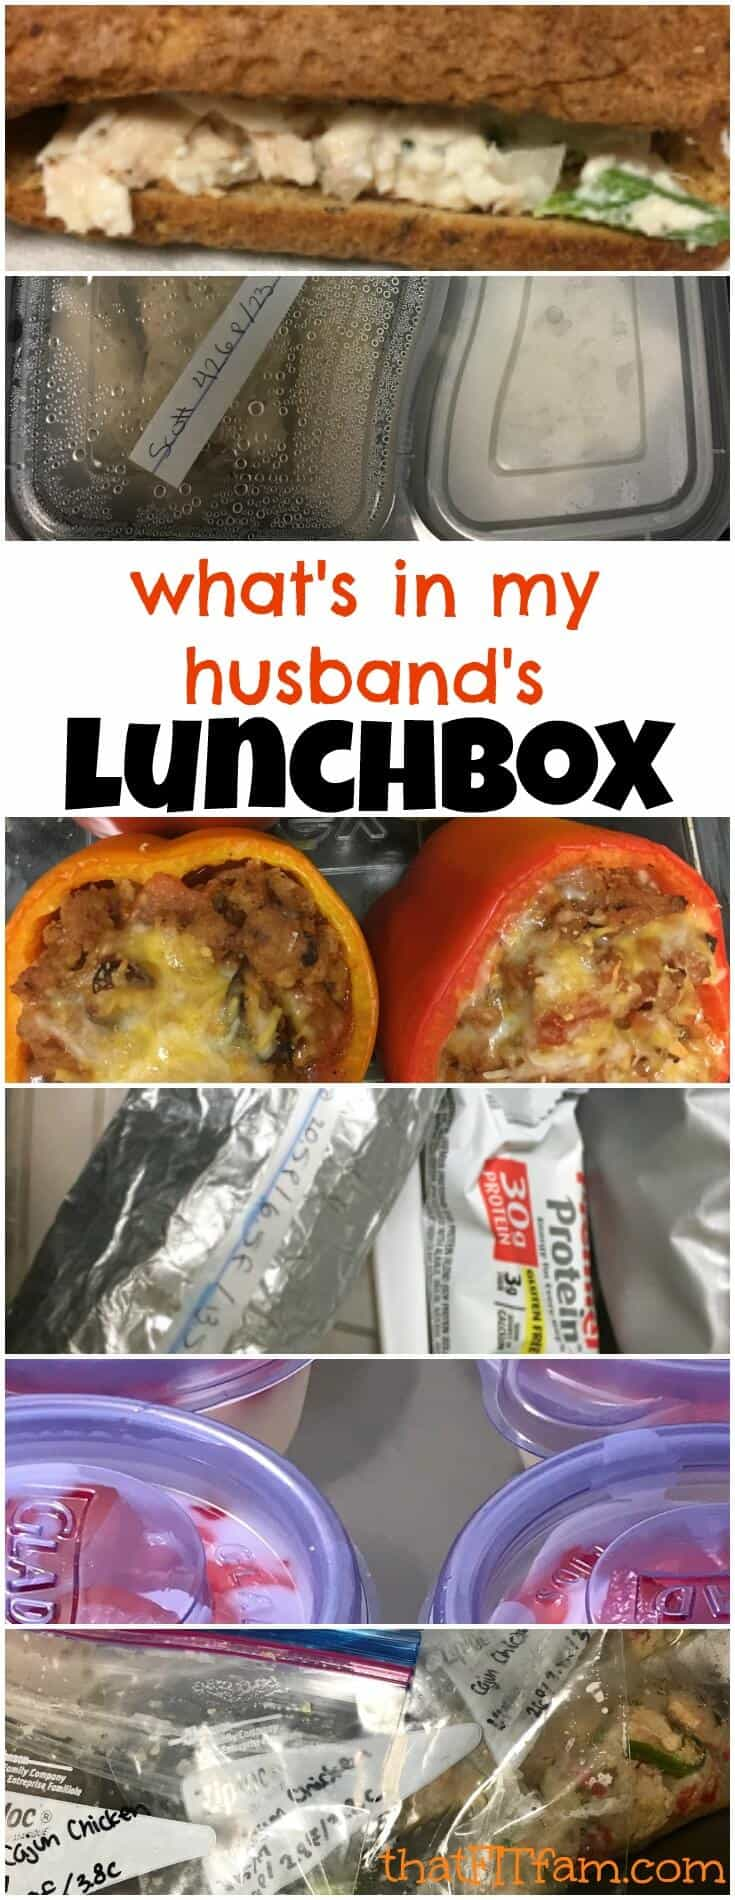 what's in my husband's lunchbox! easy, healthy lunchbox ideas for work! diet friendly, low carb